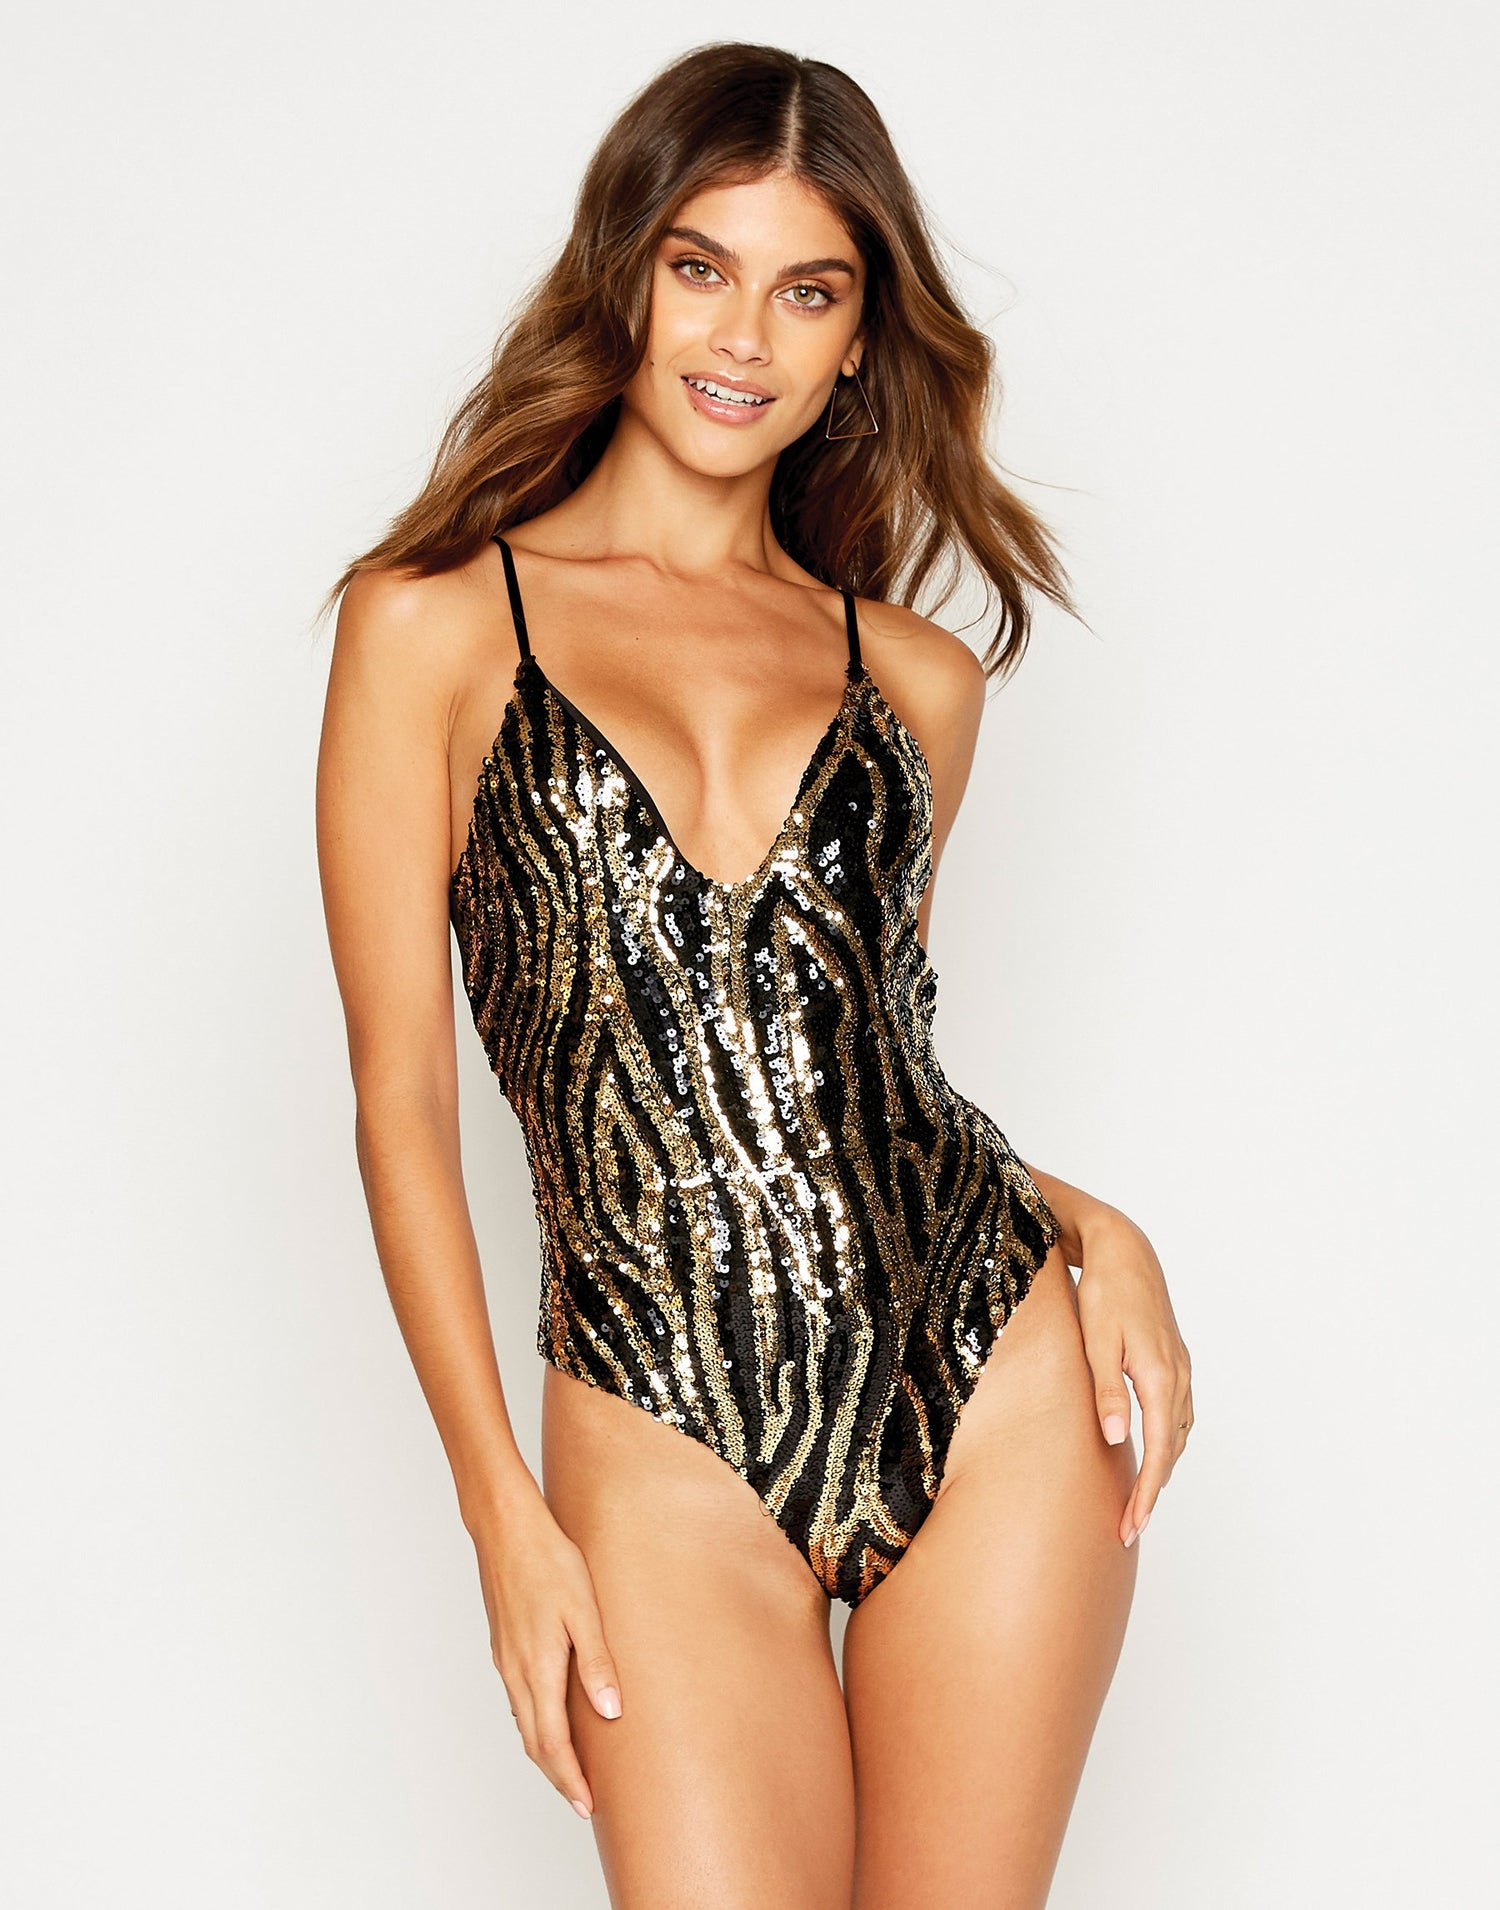 Shiloh One Piece in Black with Gold and Black Sequins - front view